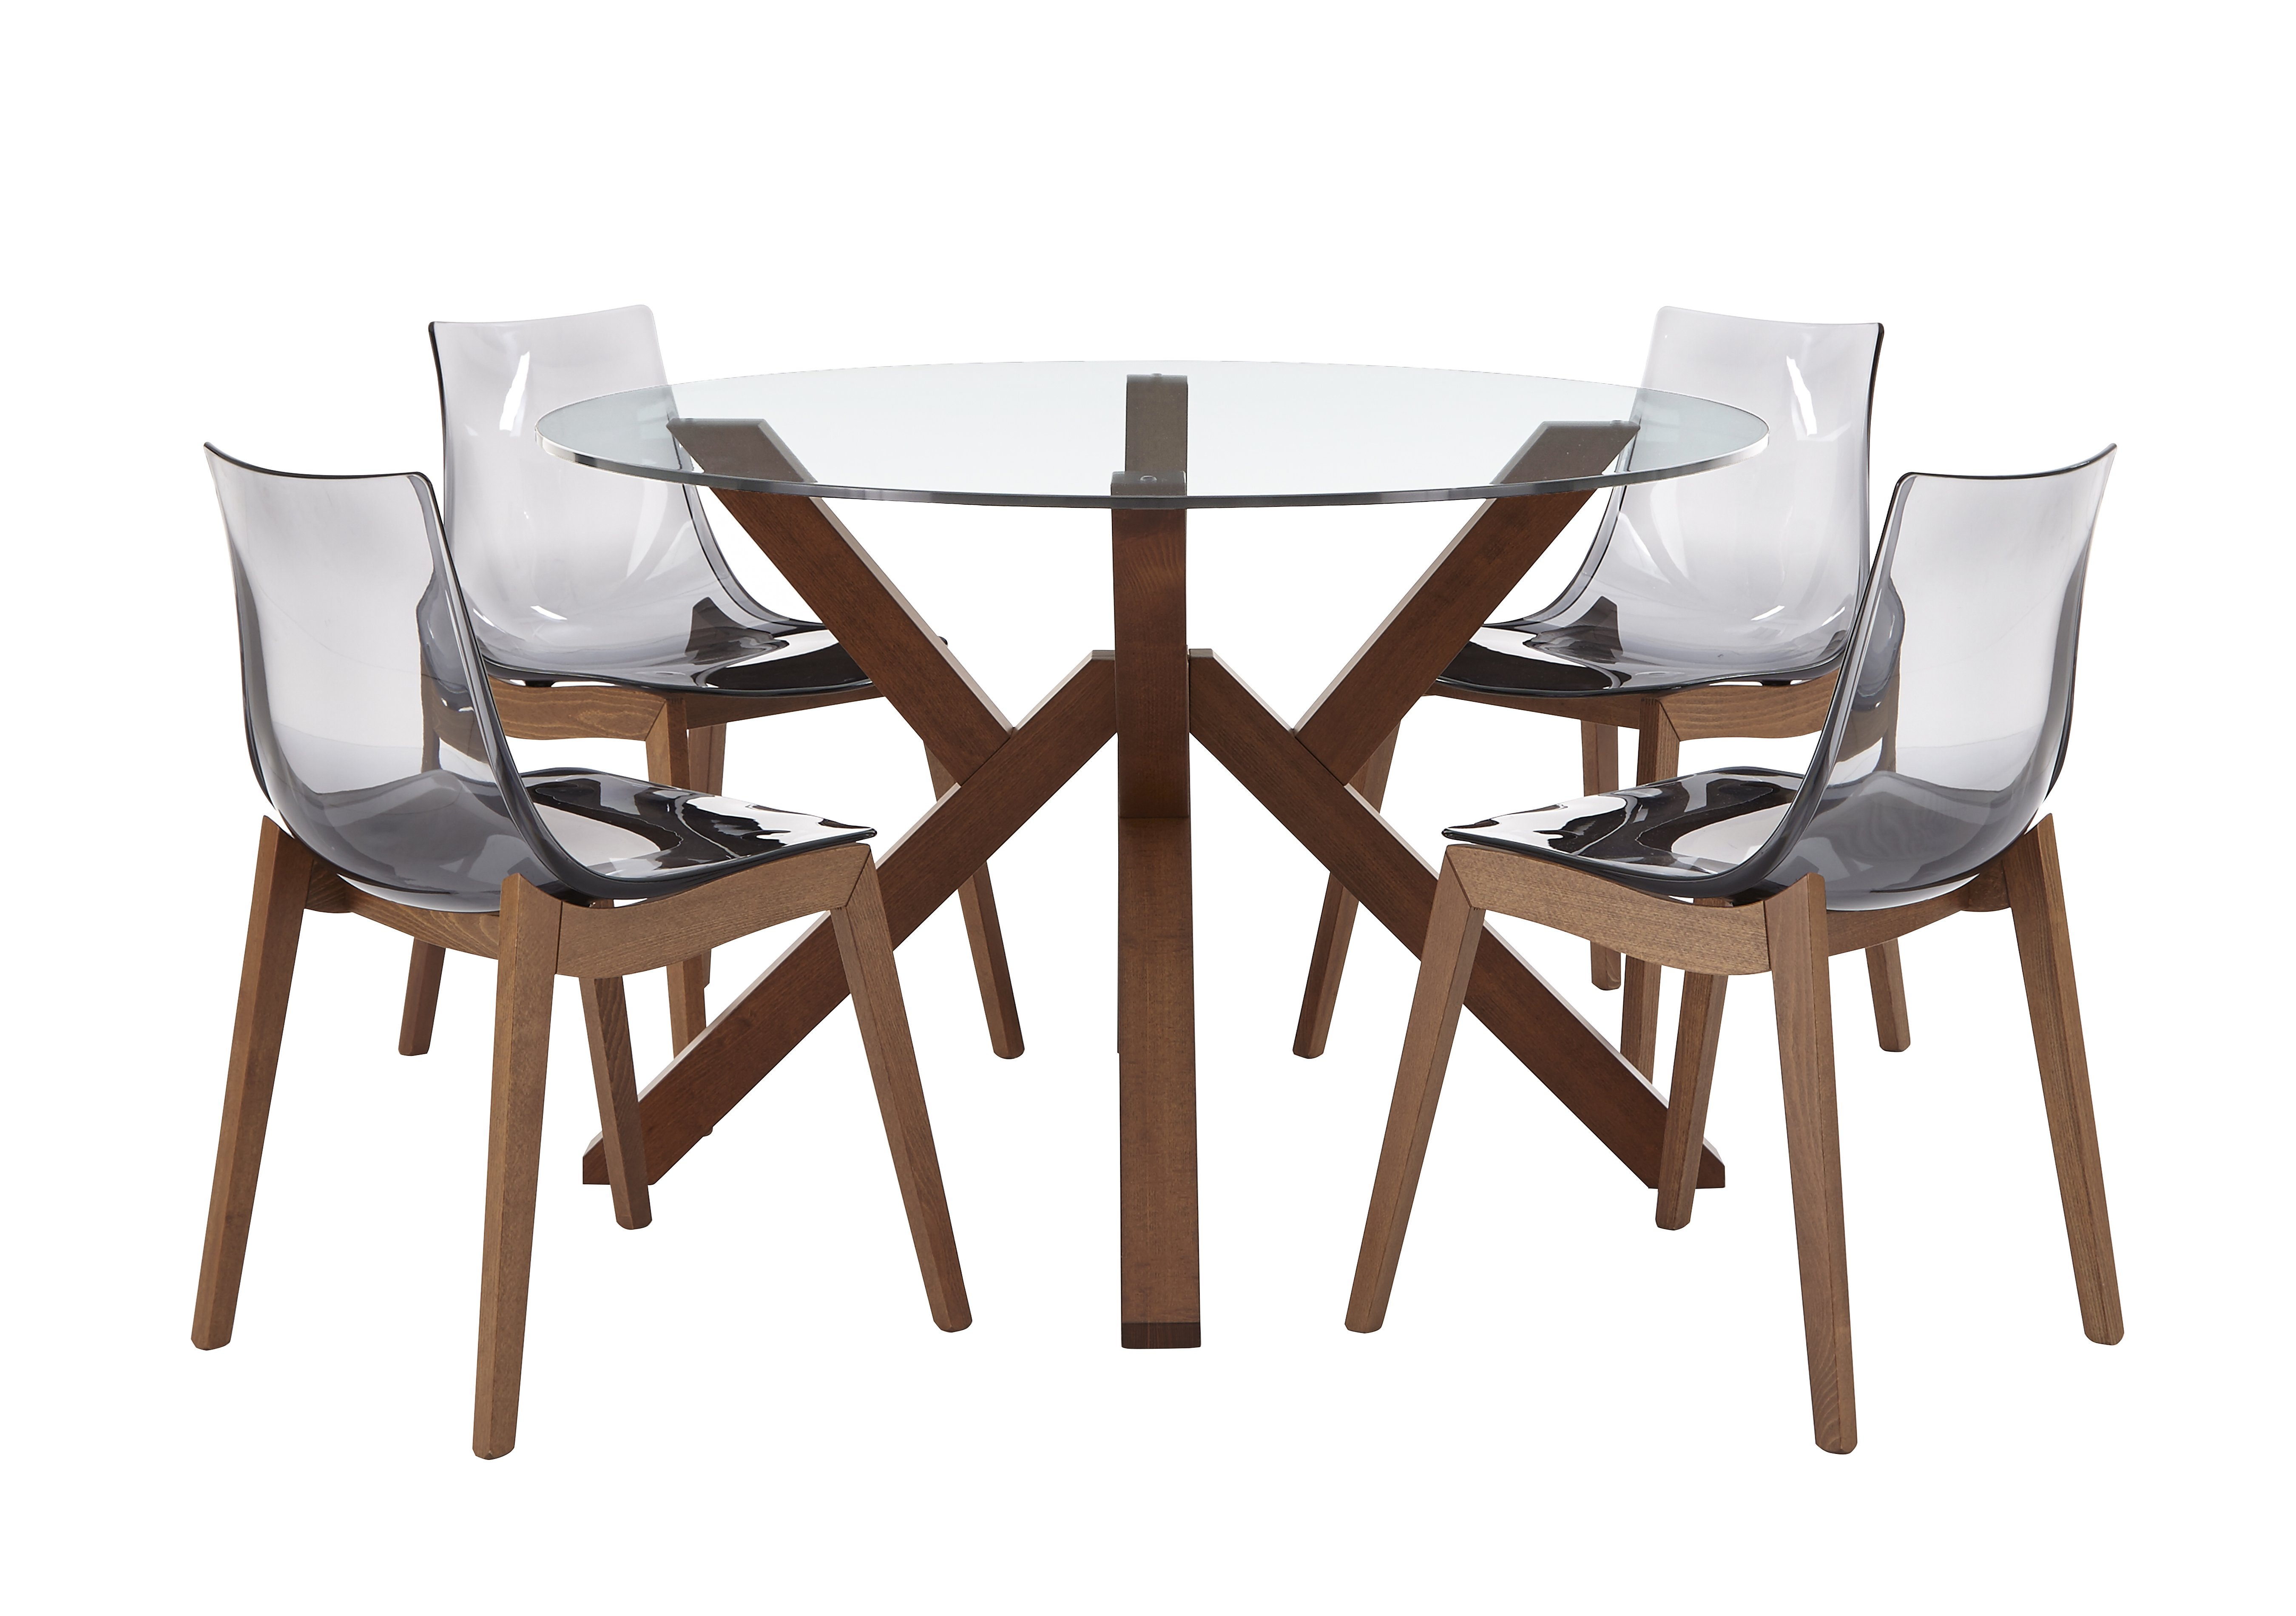 Mikado Dining Table and 4 Chairs Calligaris Furniture Village